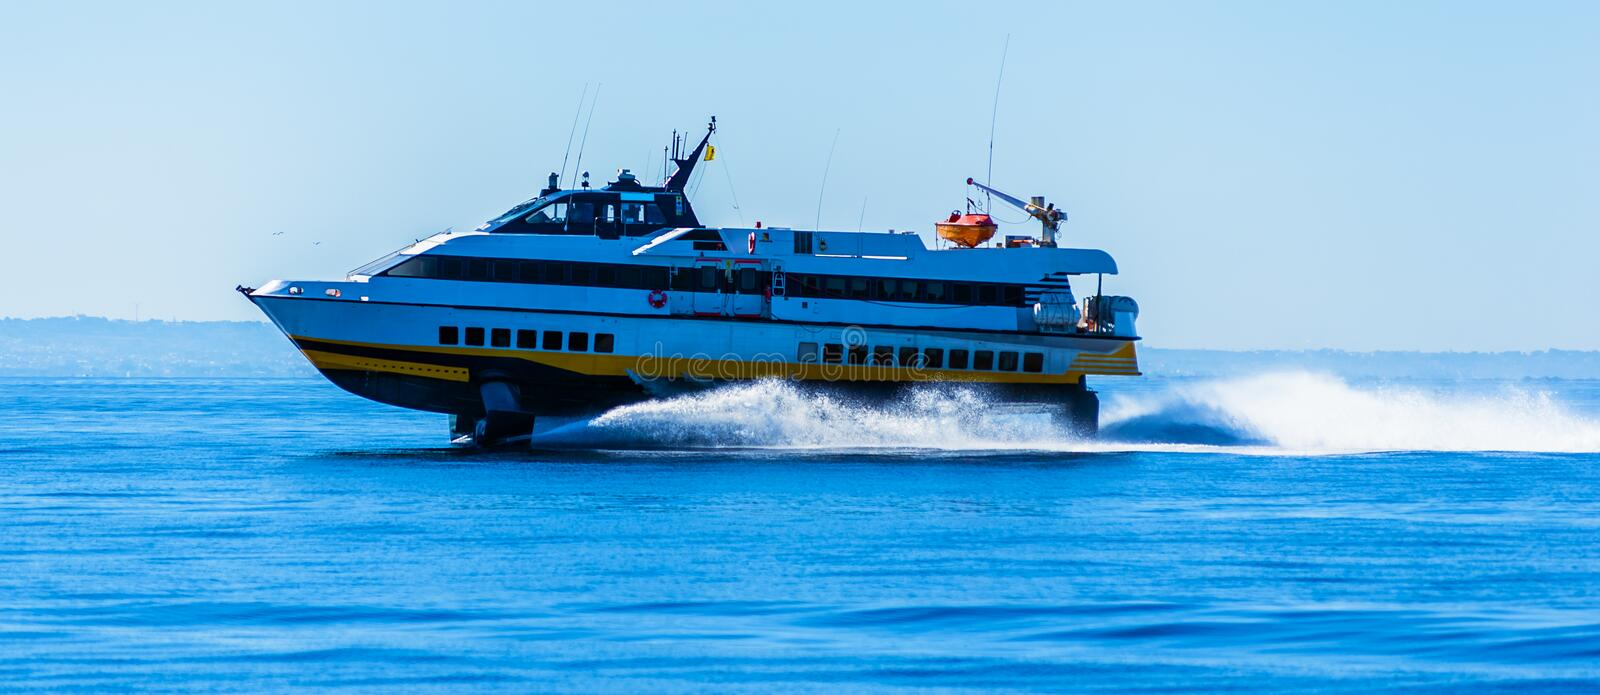 Hydrofoil boat runs at full speed. On the sea waves royalty free stock photos